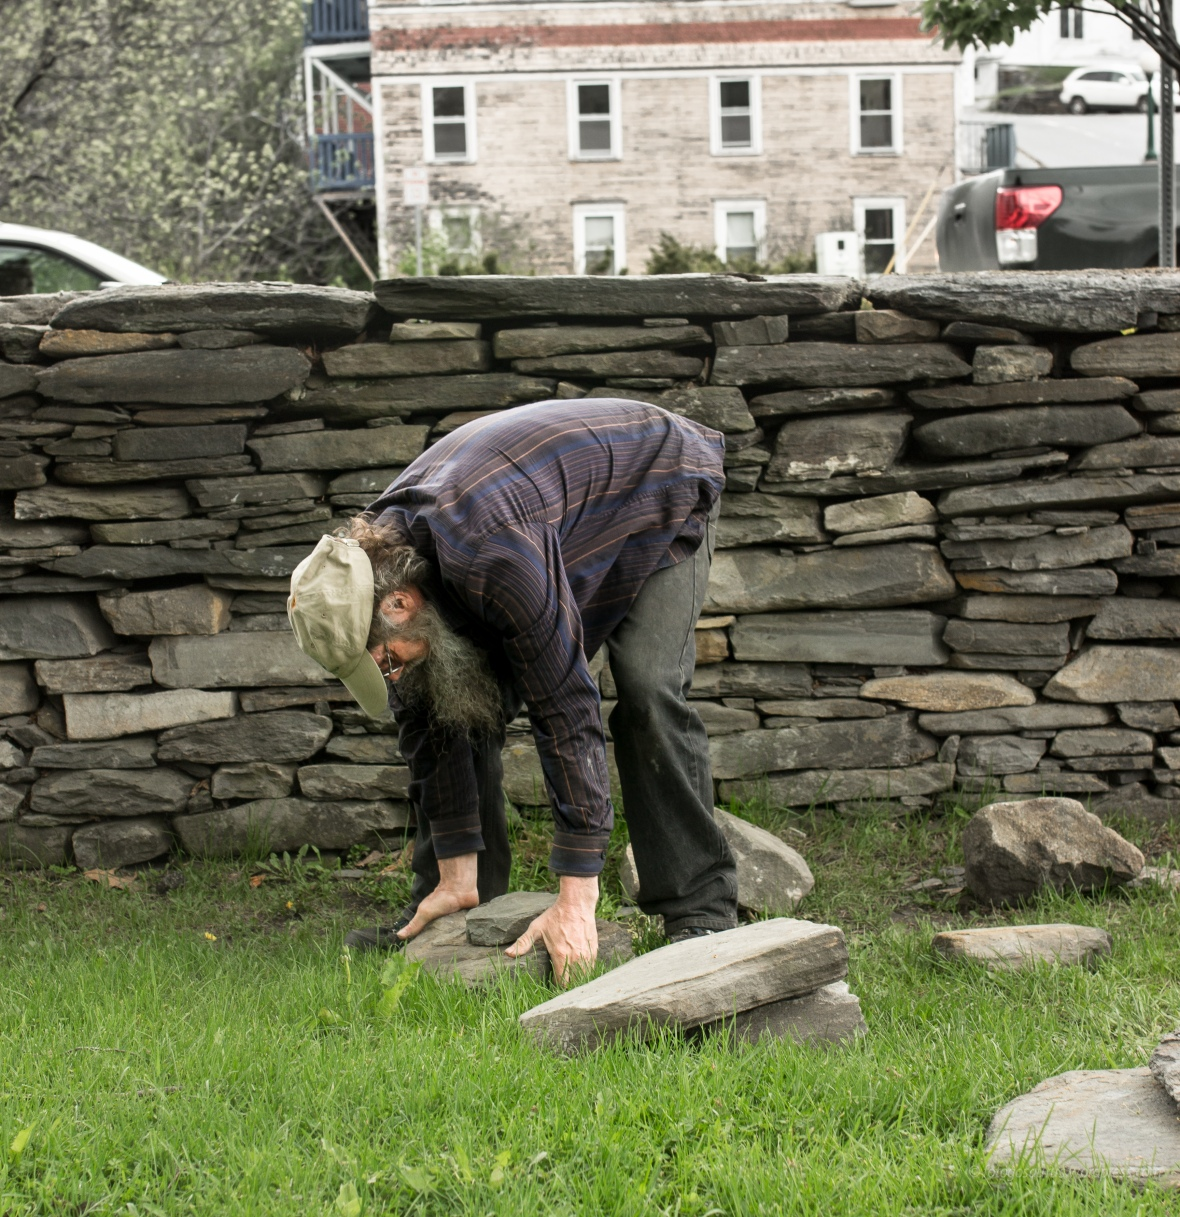 bending over lifting heavy stone